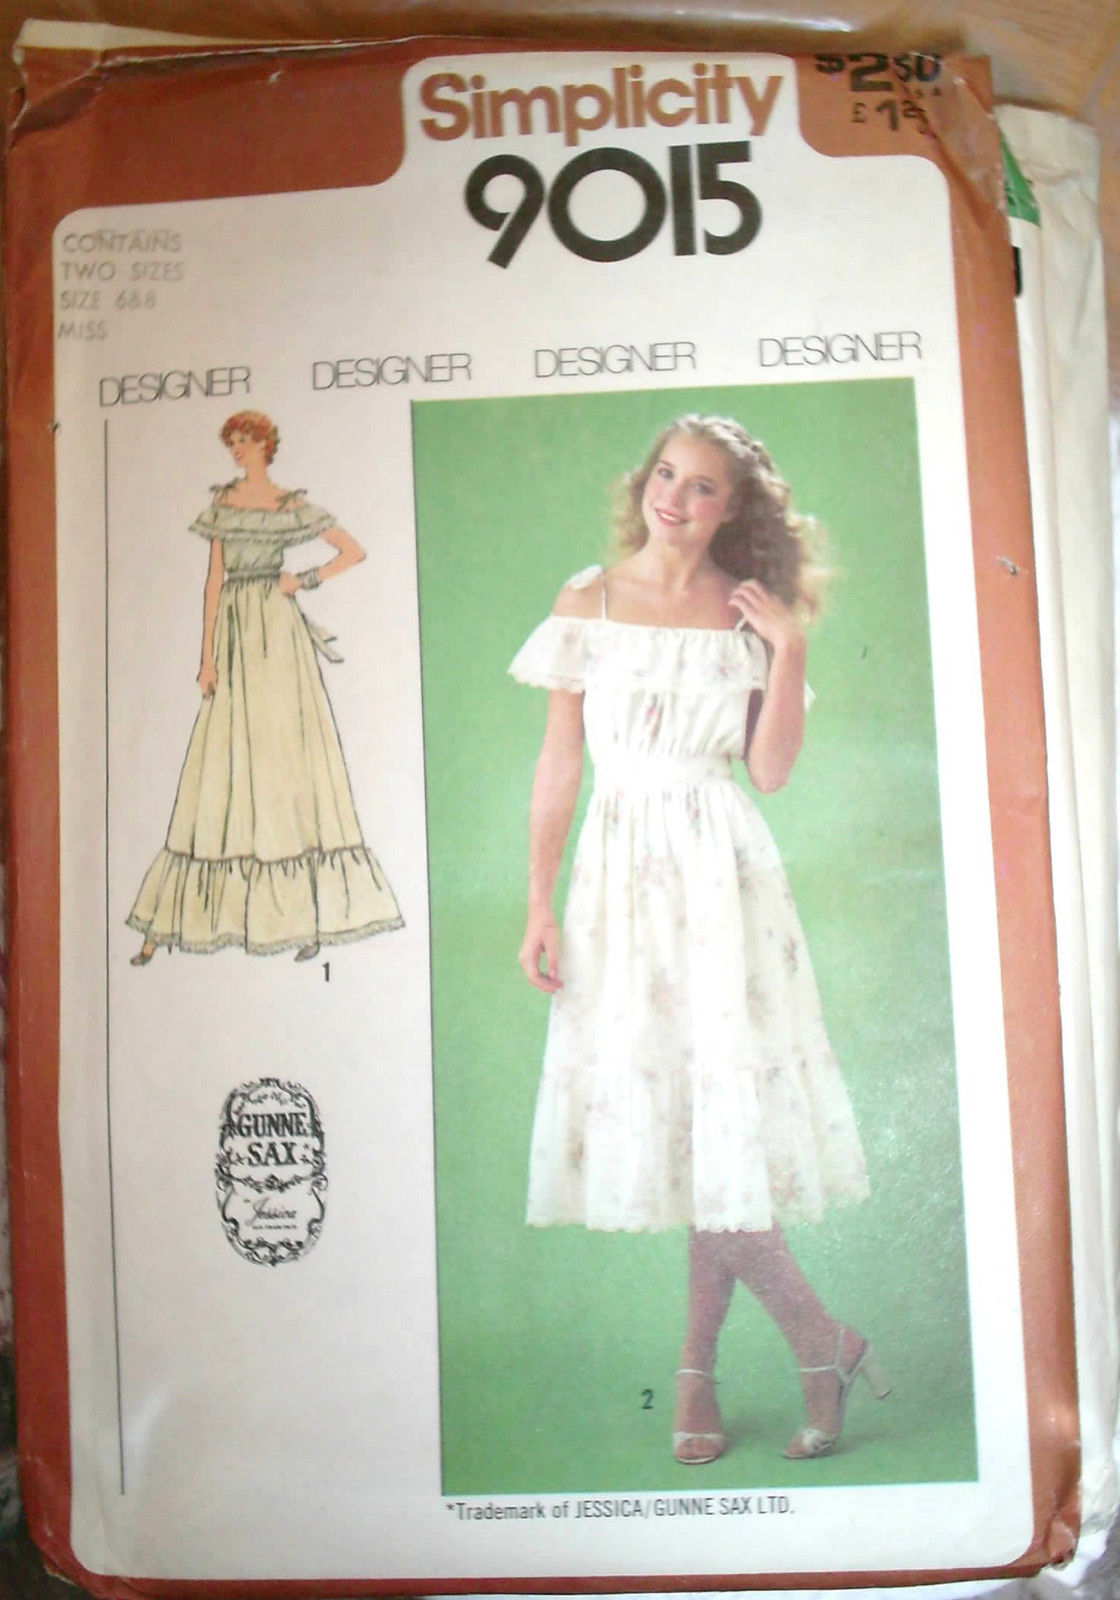 Primary image for Vintage Gunne Sax Jessica McClintock Ruffled Dress Pattern 6 8 Simplicity 9015